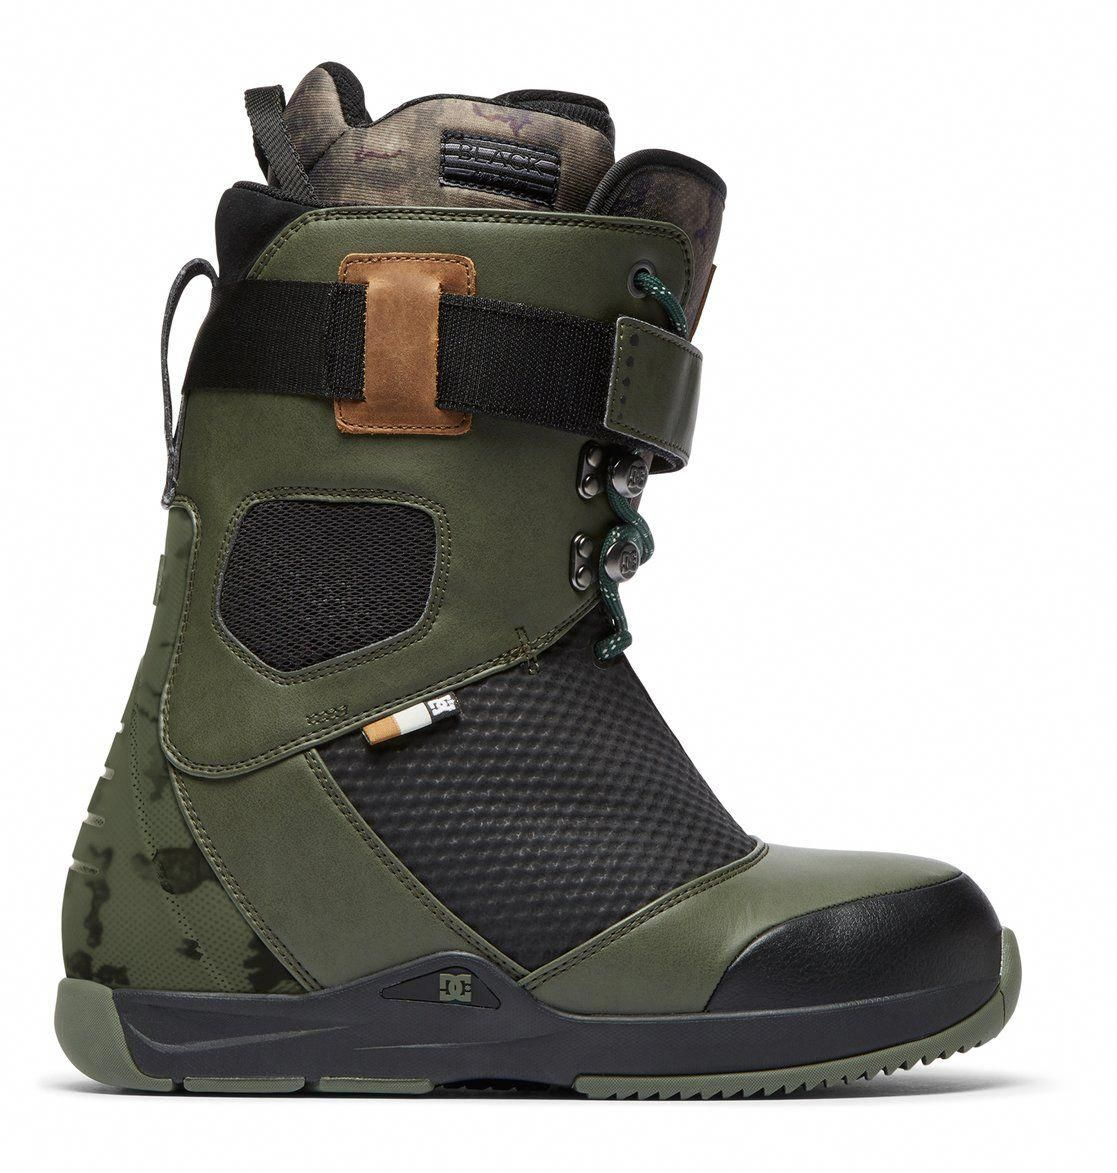 0d59c6ed9f8 DC Shoes Men s Tucknee Lace-Up Snowboard Boots ADYO200039 (eBay Link)   Snowboarding